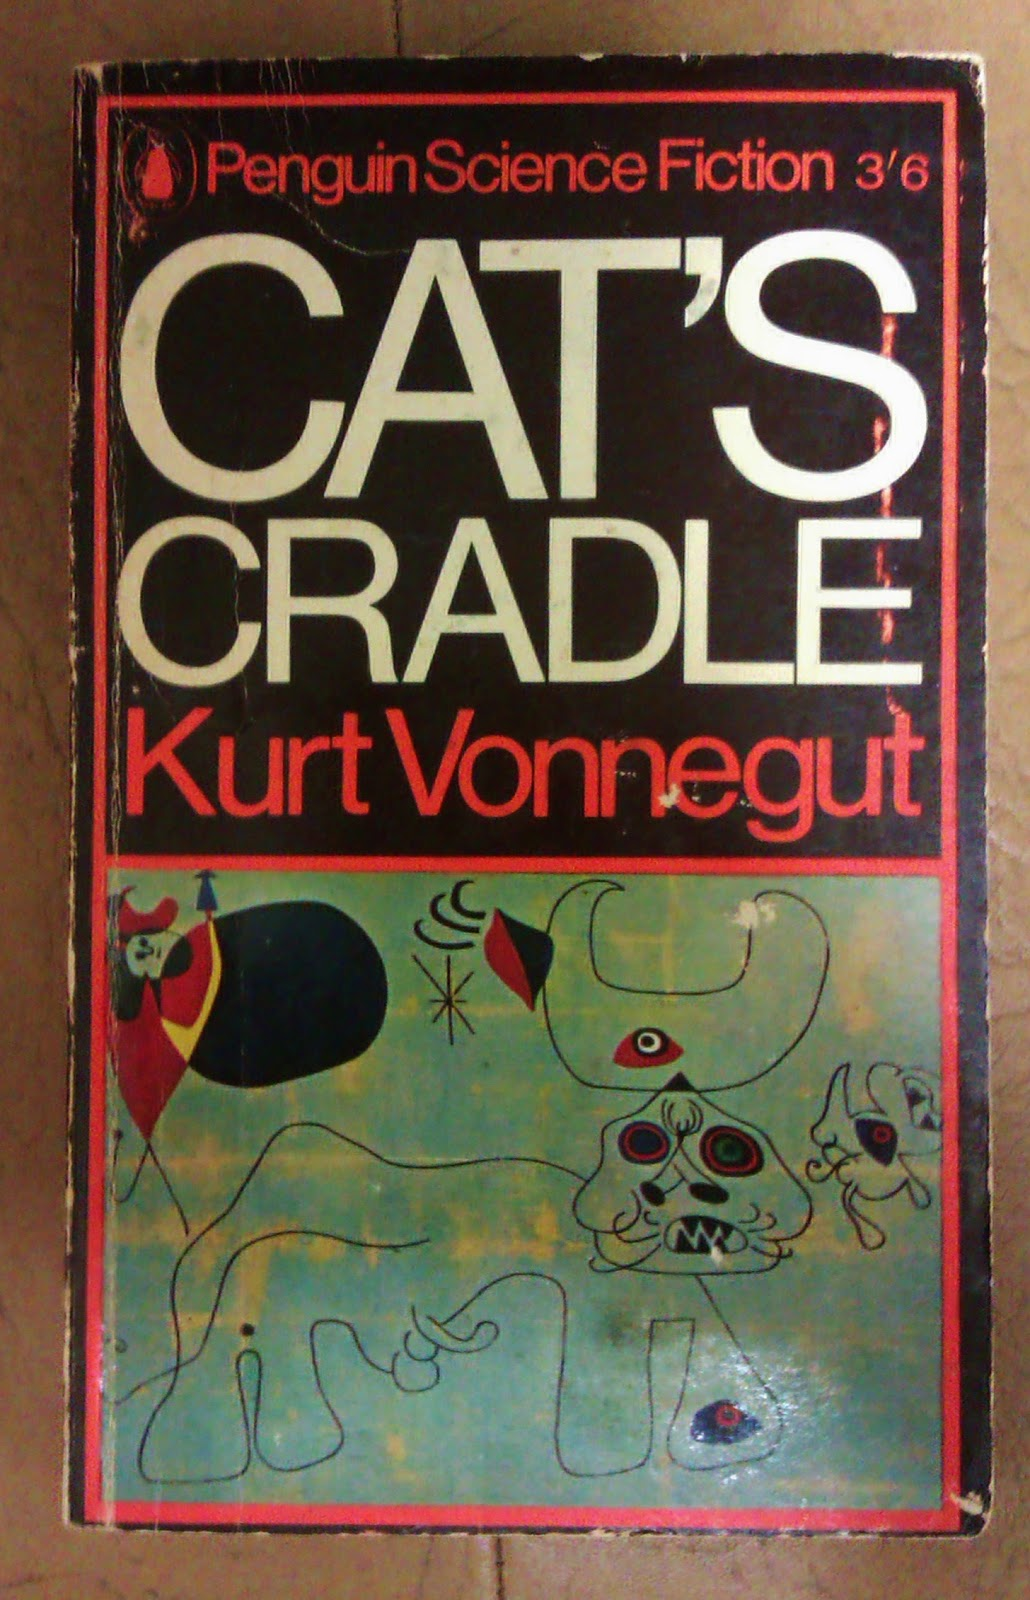 a plot overview of kurt vonneguts cats cradle Cat's cradle  adventure , comedy , drama | tv  (such as project notes, plot summary and industry news)  based on the novel by kurt vonnegut, bluebeard is the.